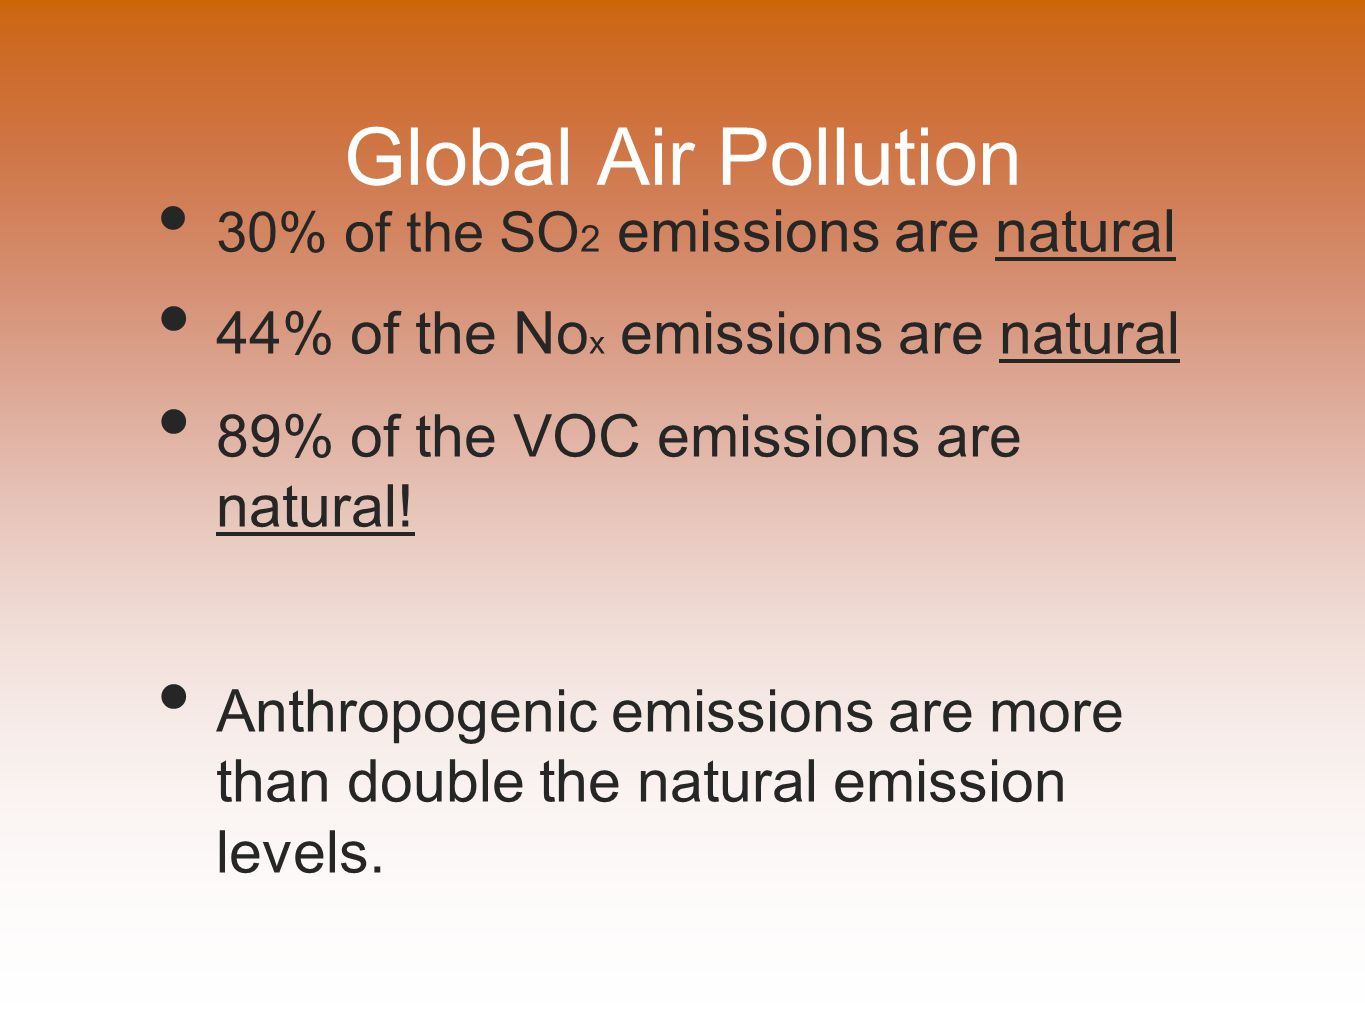 Global Air Pollution 44% of the Nox emissions are natural